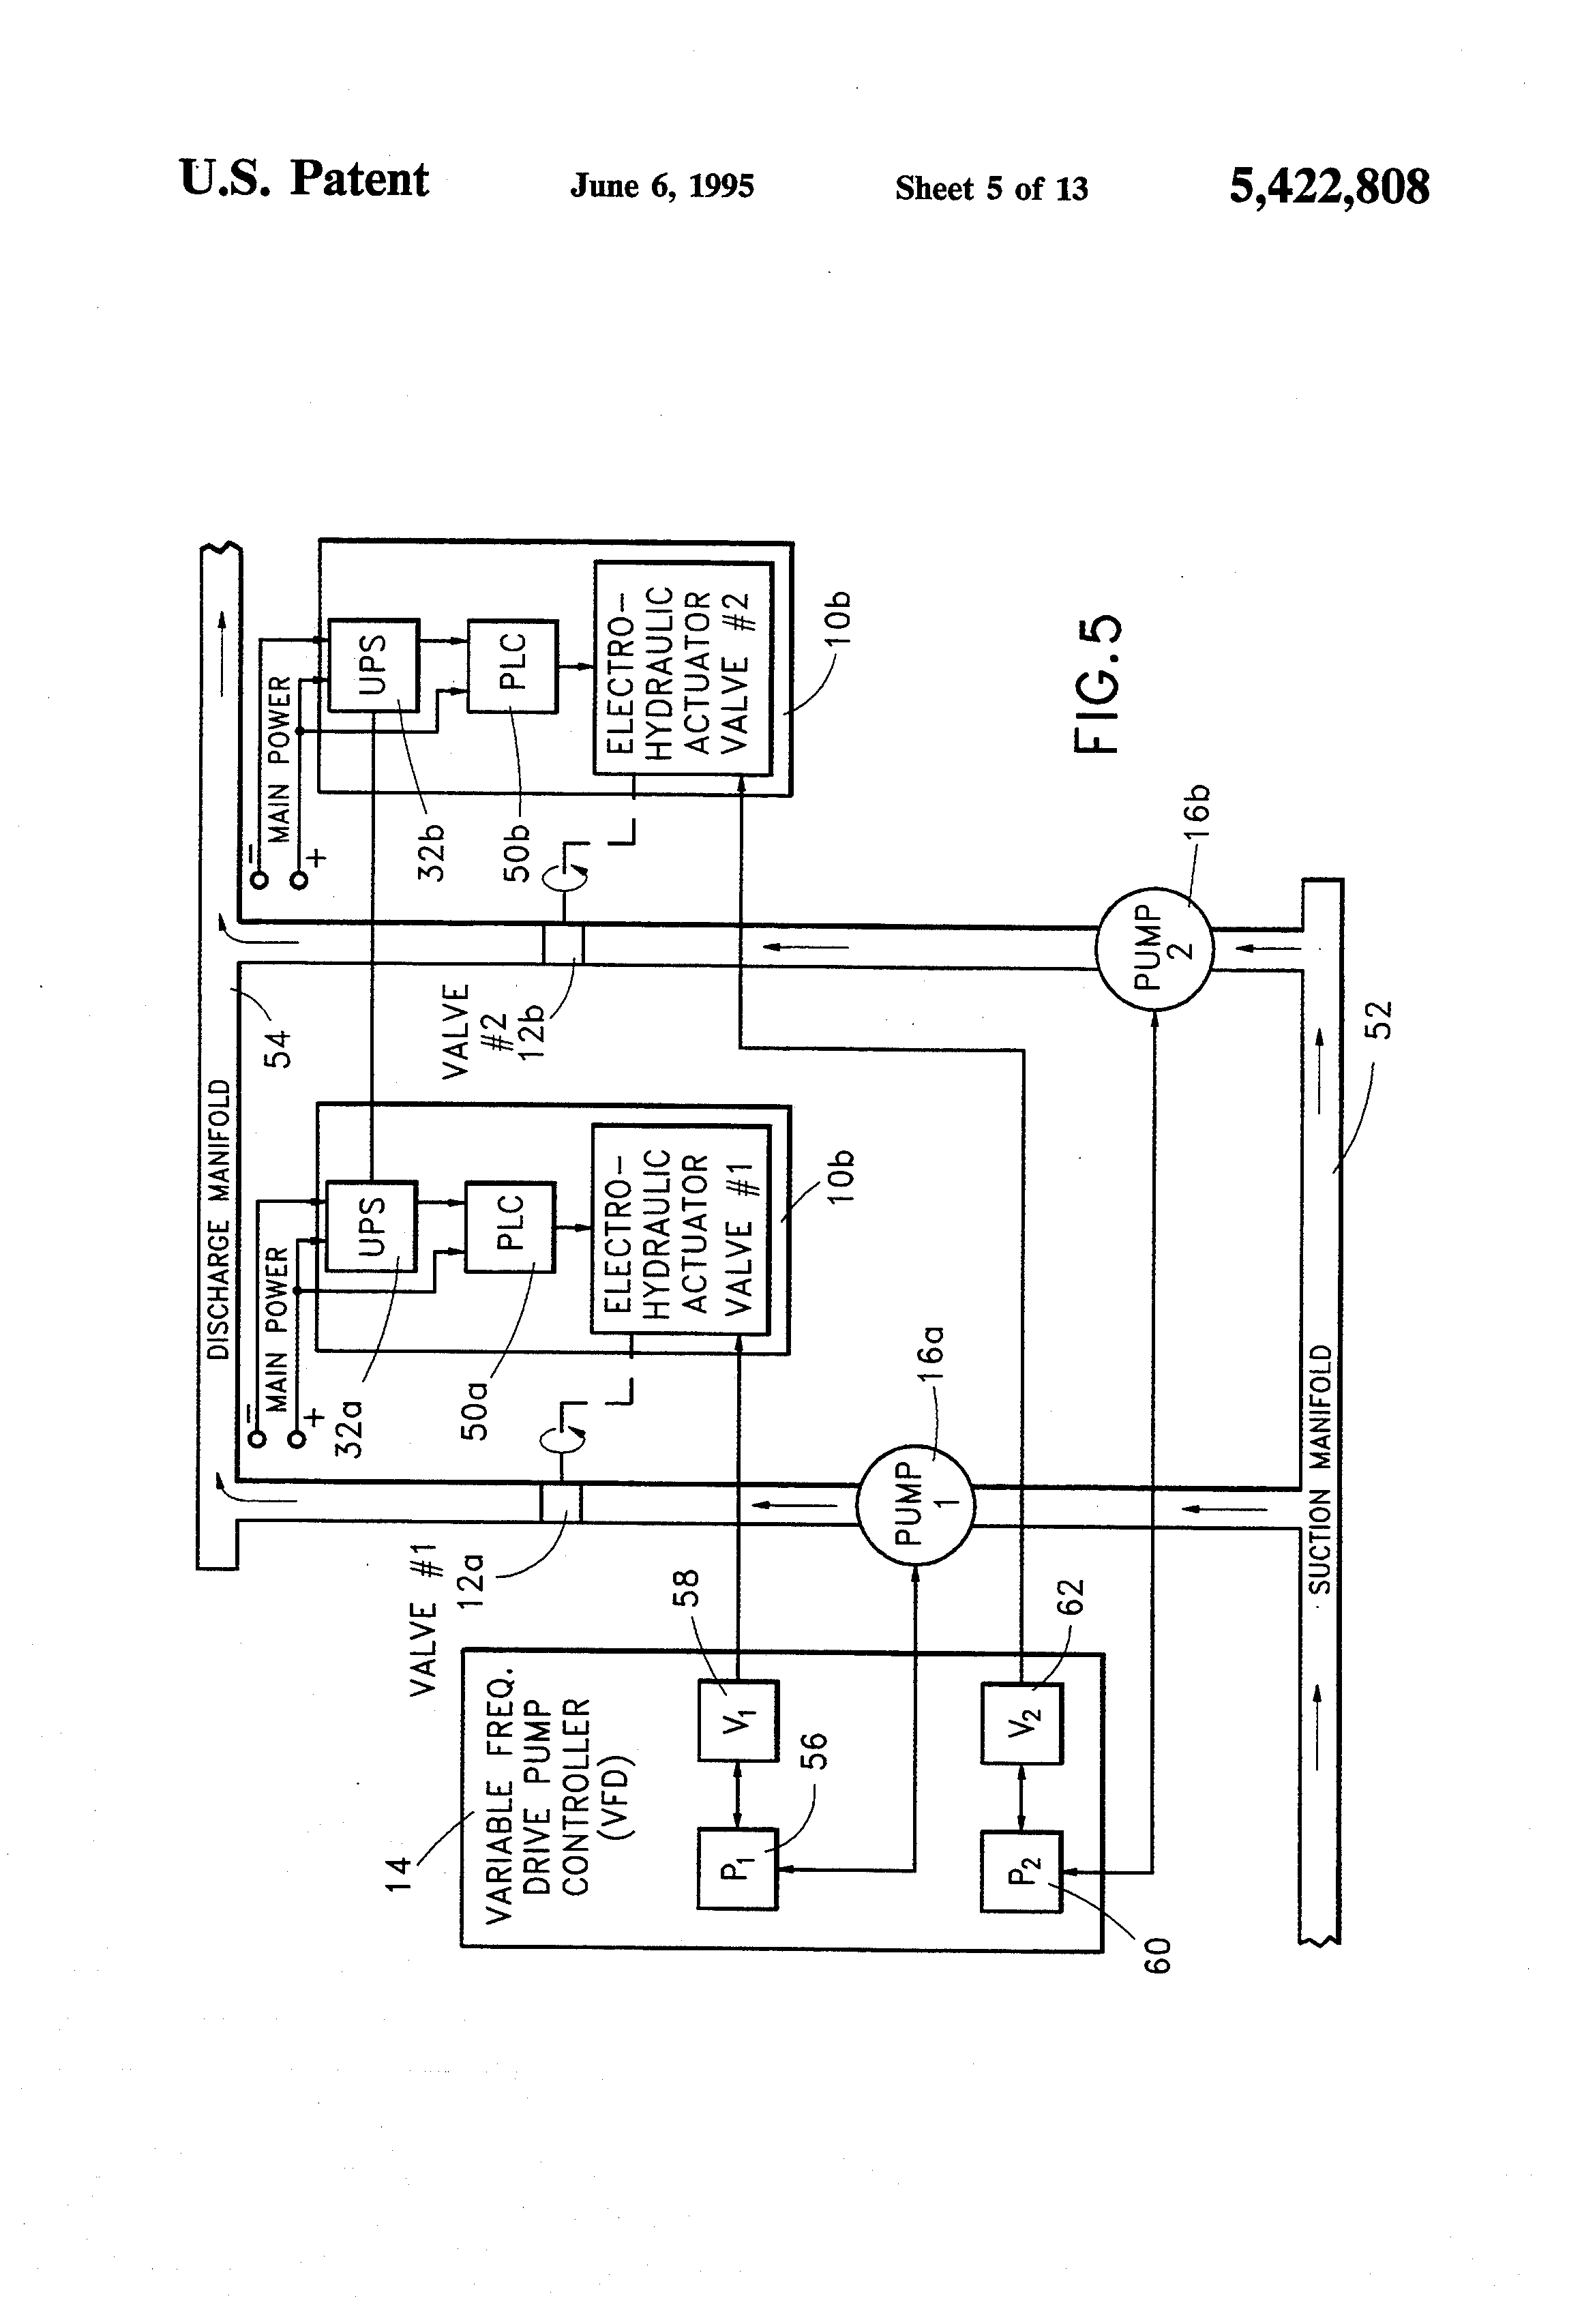 US5422808 5 mov wiring diagram swf wiring diagram \u2022 wiring diagrams j squared co rotork actuator wiring diagrams at soozxer.org